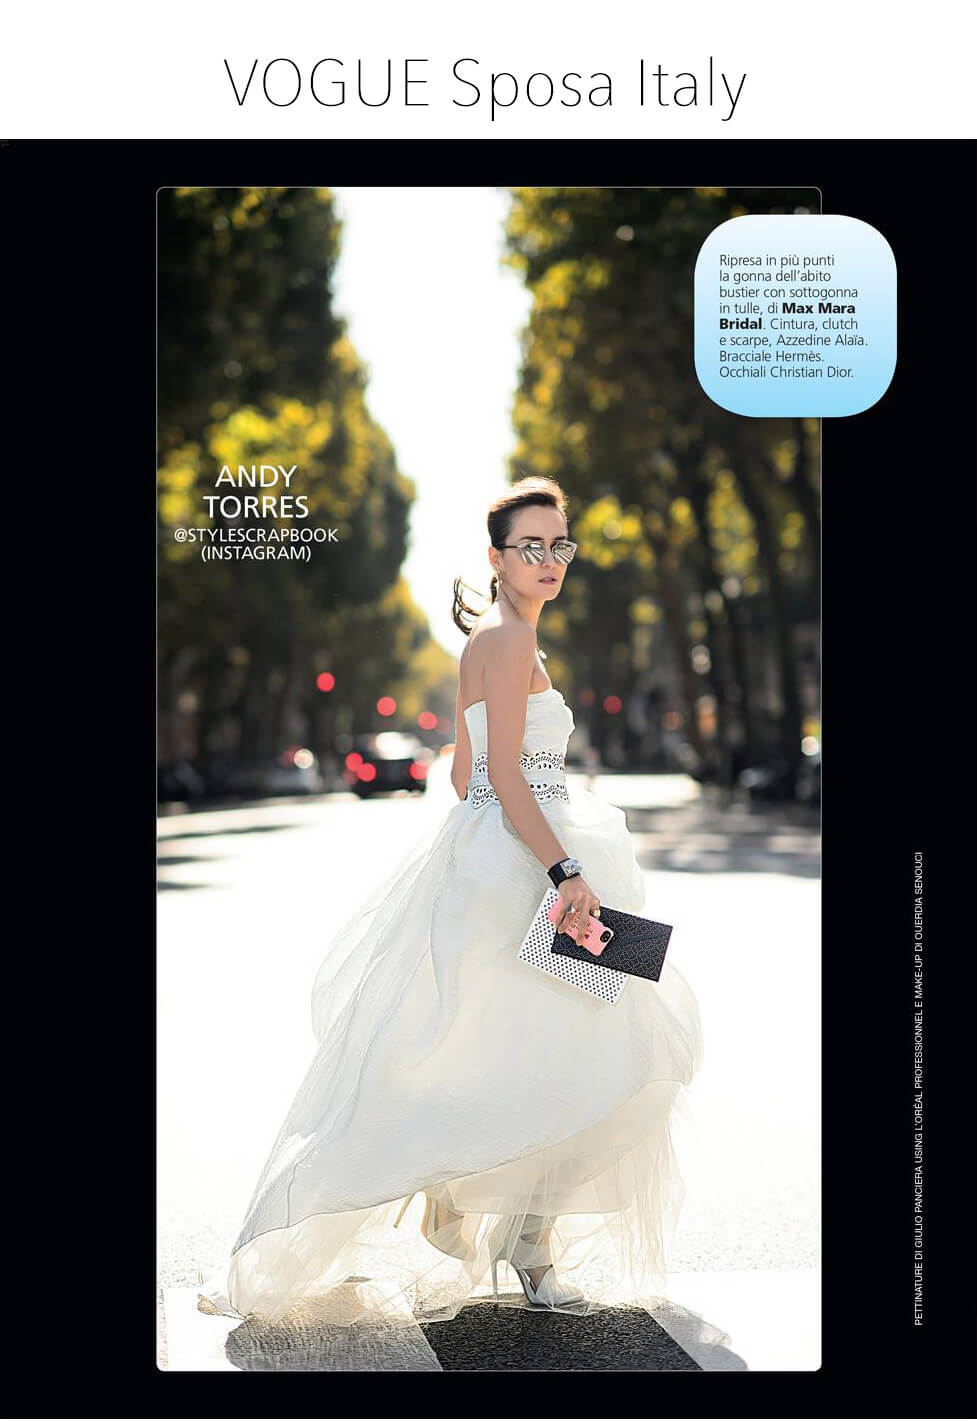 Fashion Blogger Andy Torres featured on an editorial for VOGUE Sposa